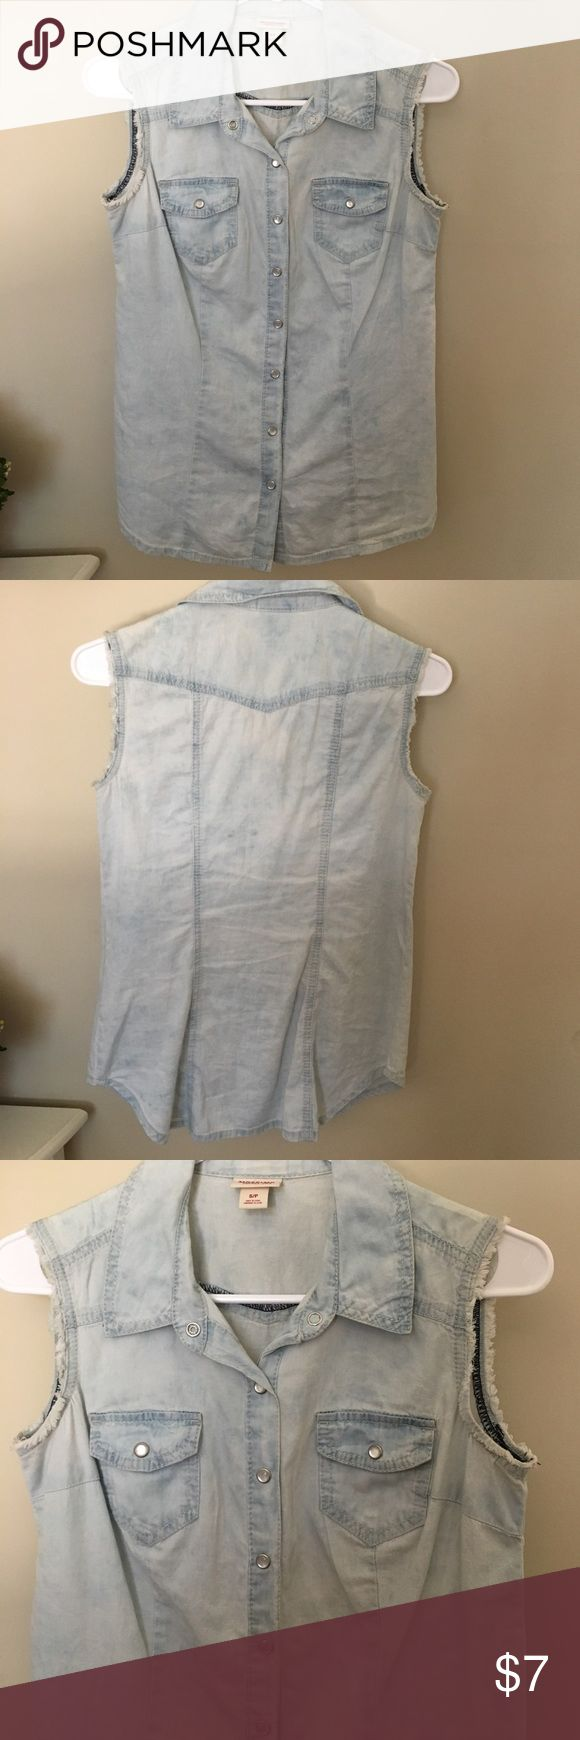 "Light blue jean cut off shirt Light blue jean cut off shirt. Sleeves are slightly frayed. Buttons are ""pearl"". Shirt is in perfect condition. Mossimo Supply Co. Tops Tank Tops"